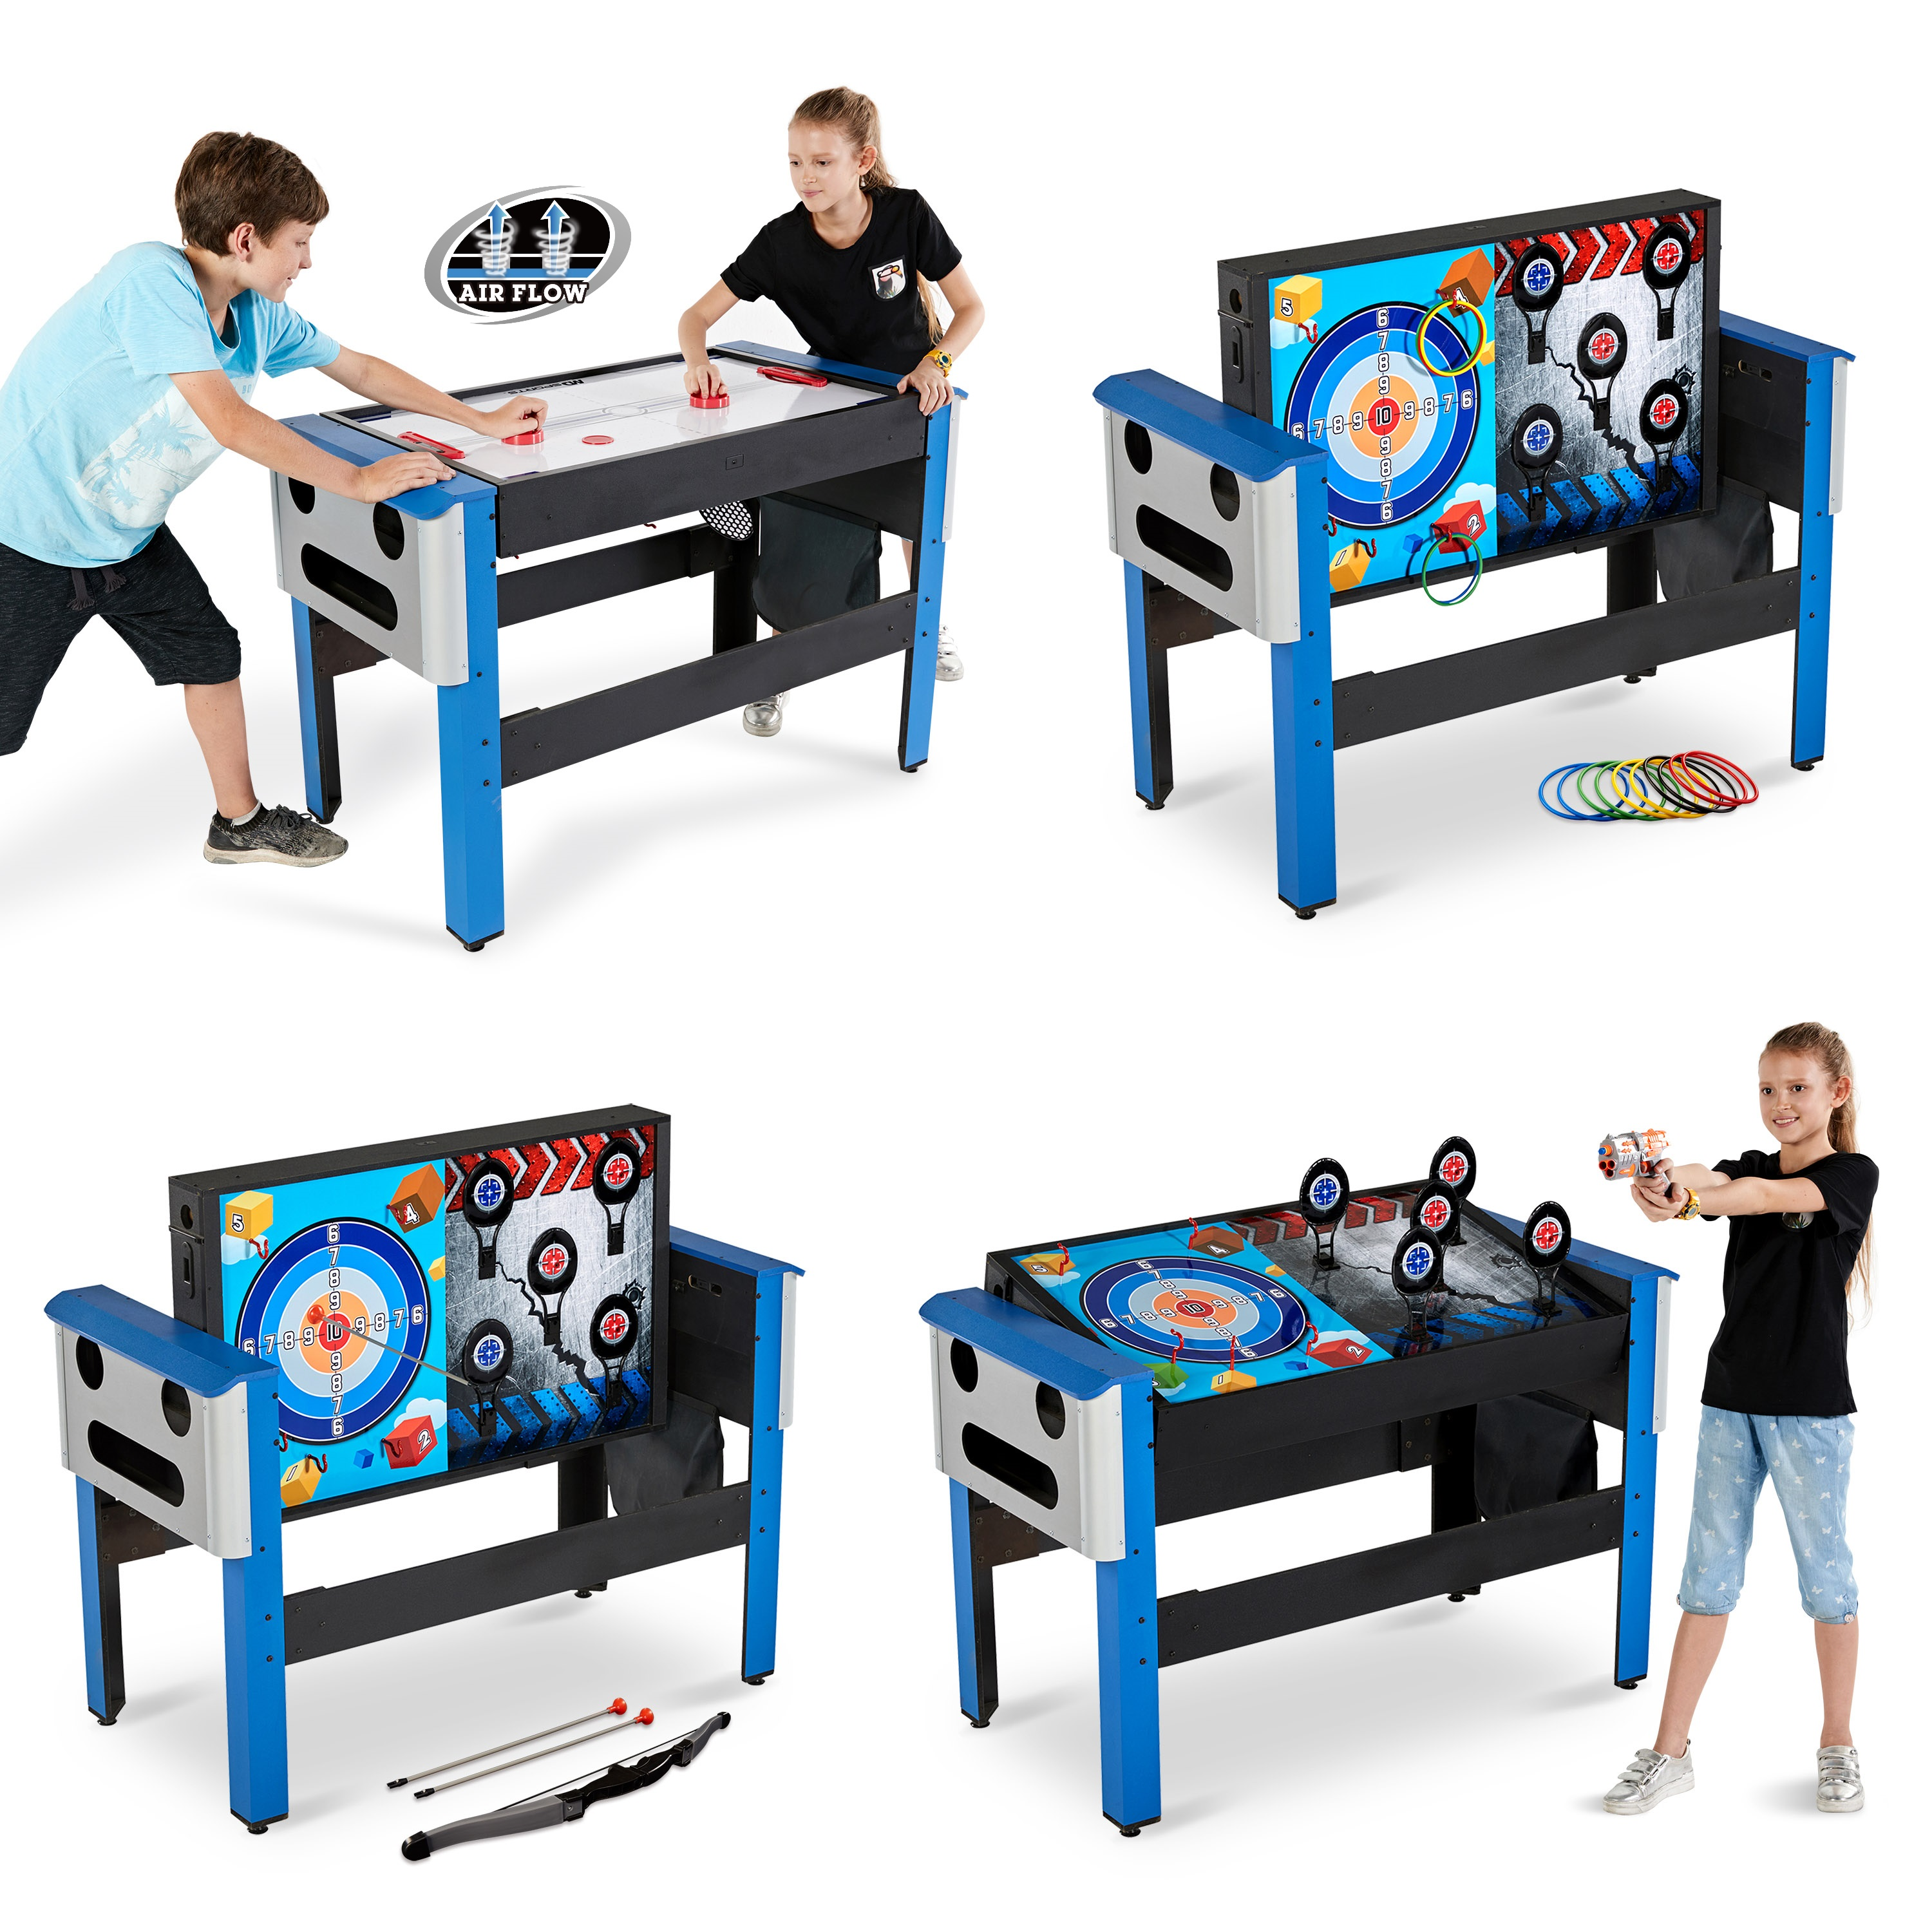 MD Sports 48 Inch 4-IN-1 Swivel Combo Game Table, Air Powered Hockey, Archery, Target Shooting and Ring Toss